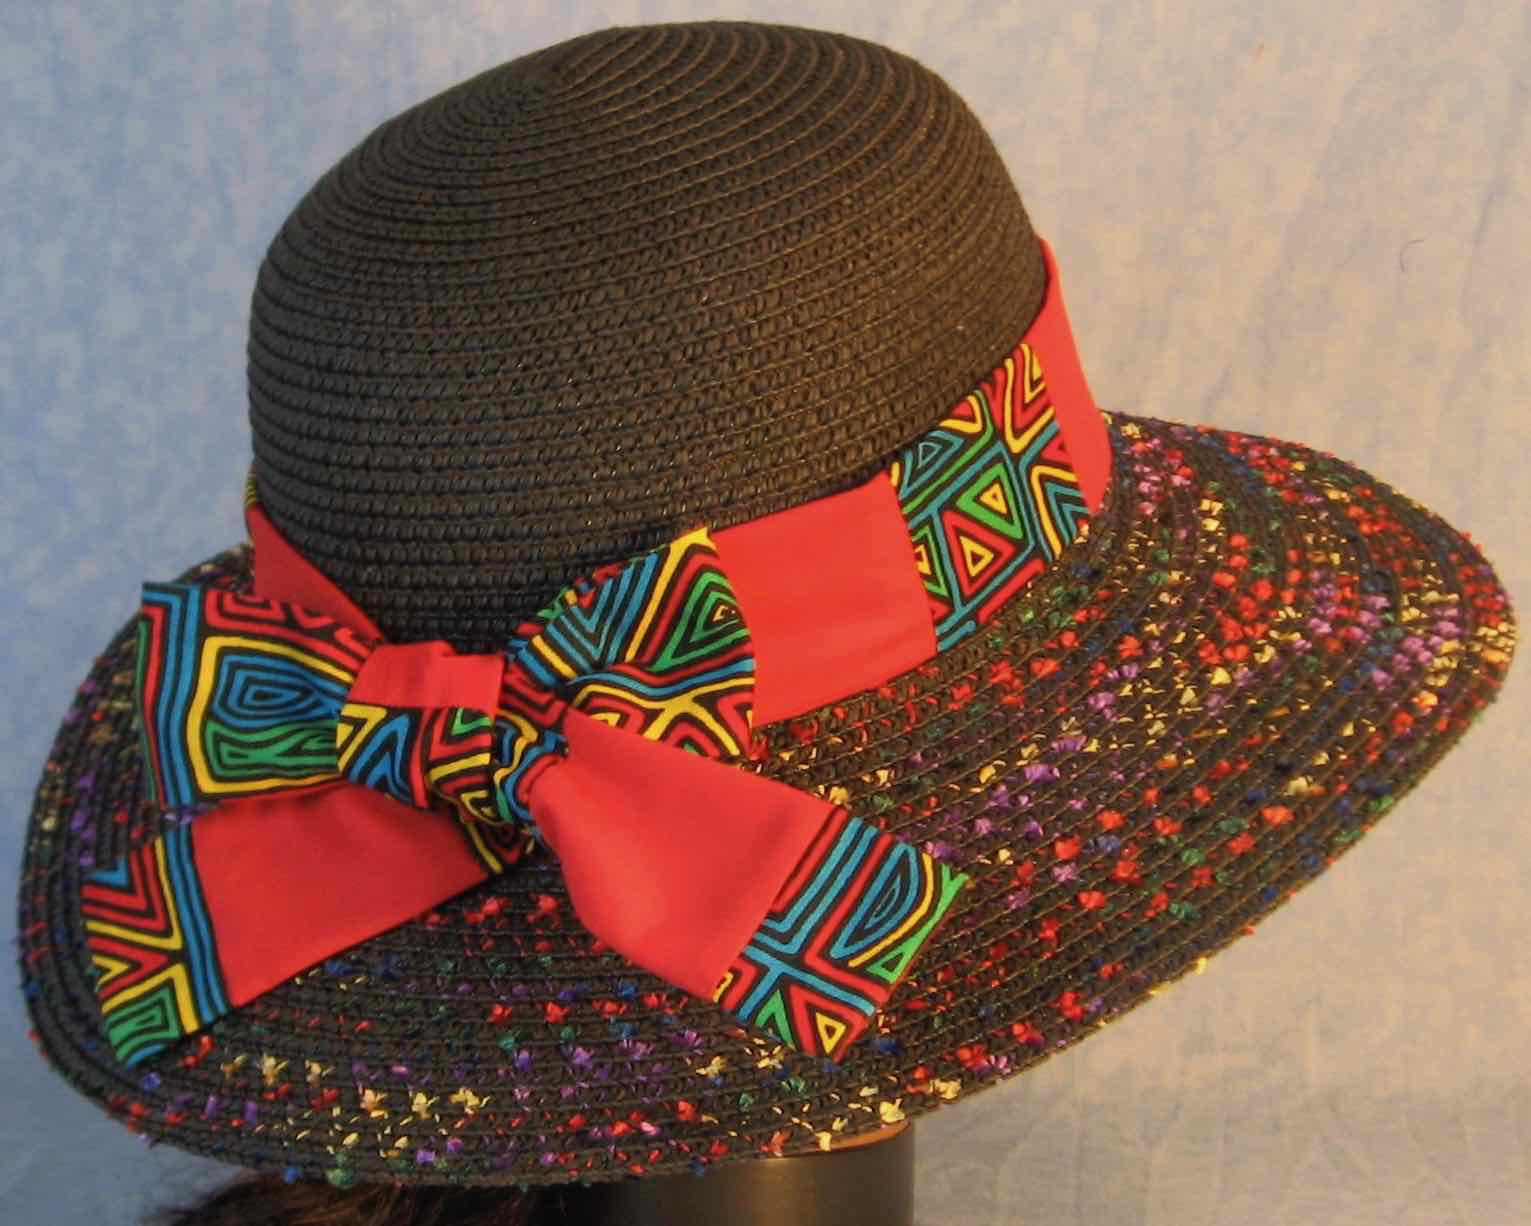 Hat Band-Blue Green Yellow Red Geometric Shapes Patchwork Red-back